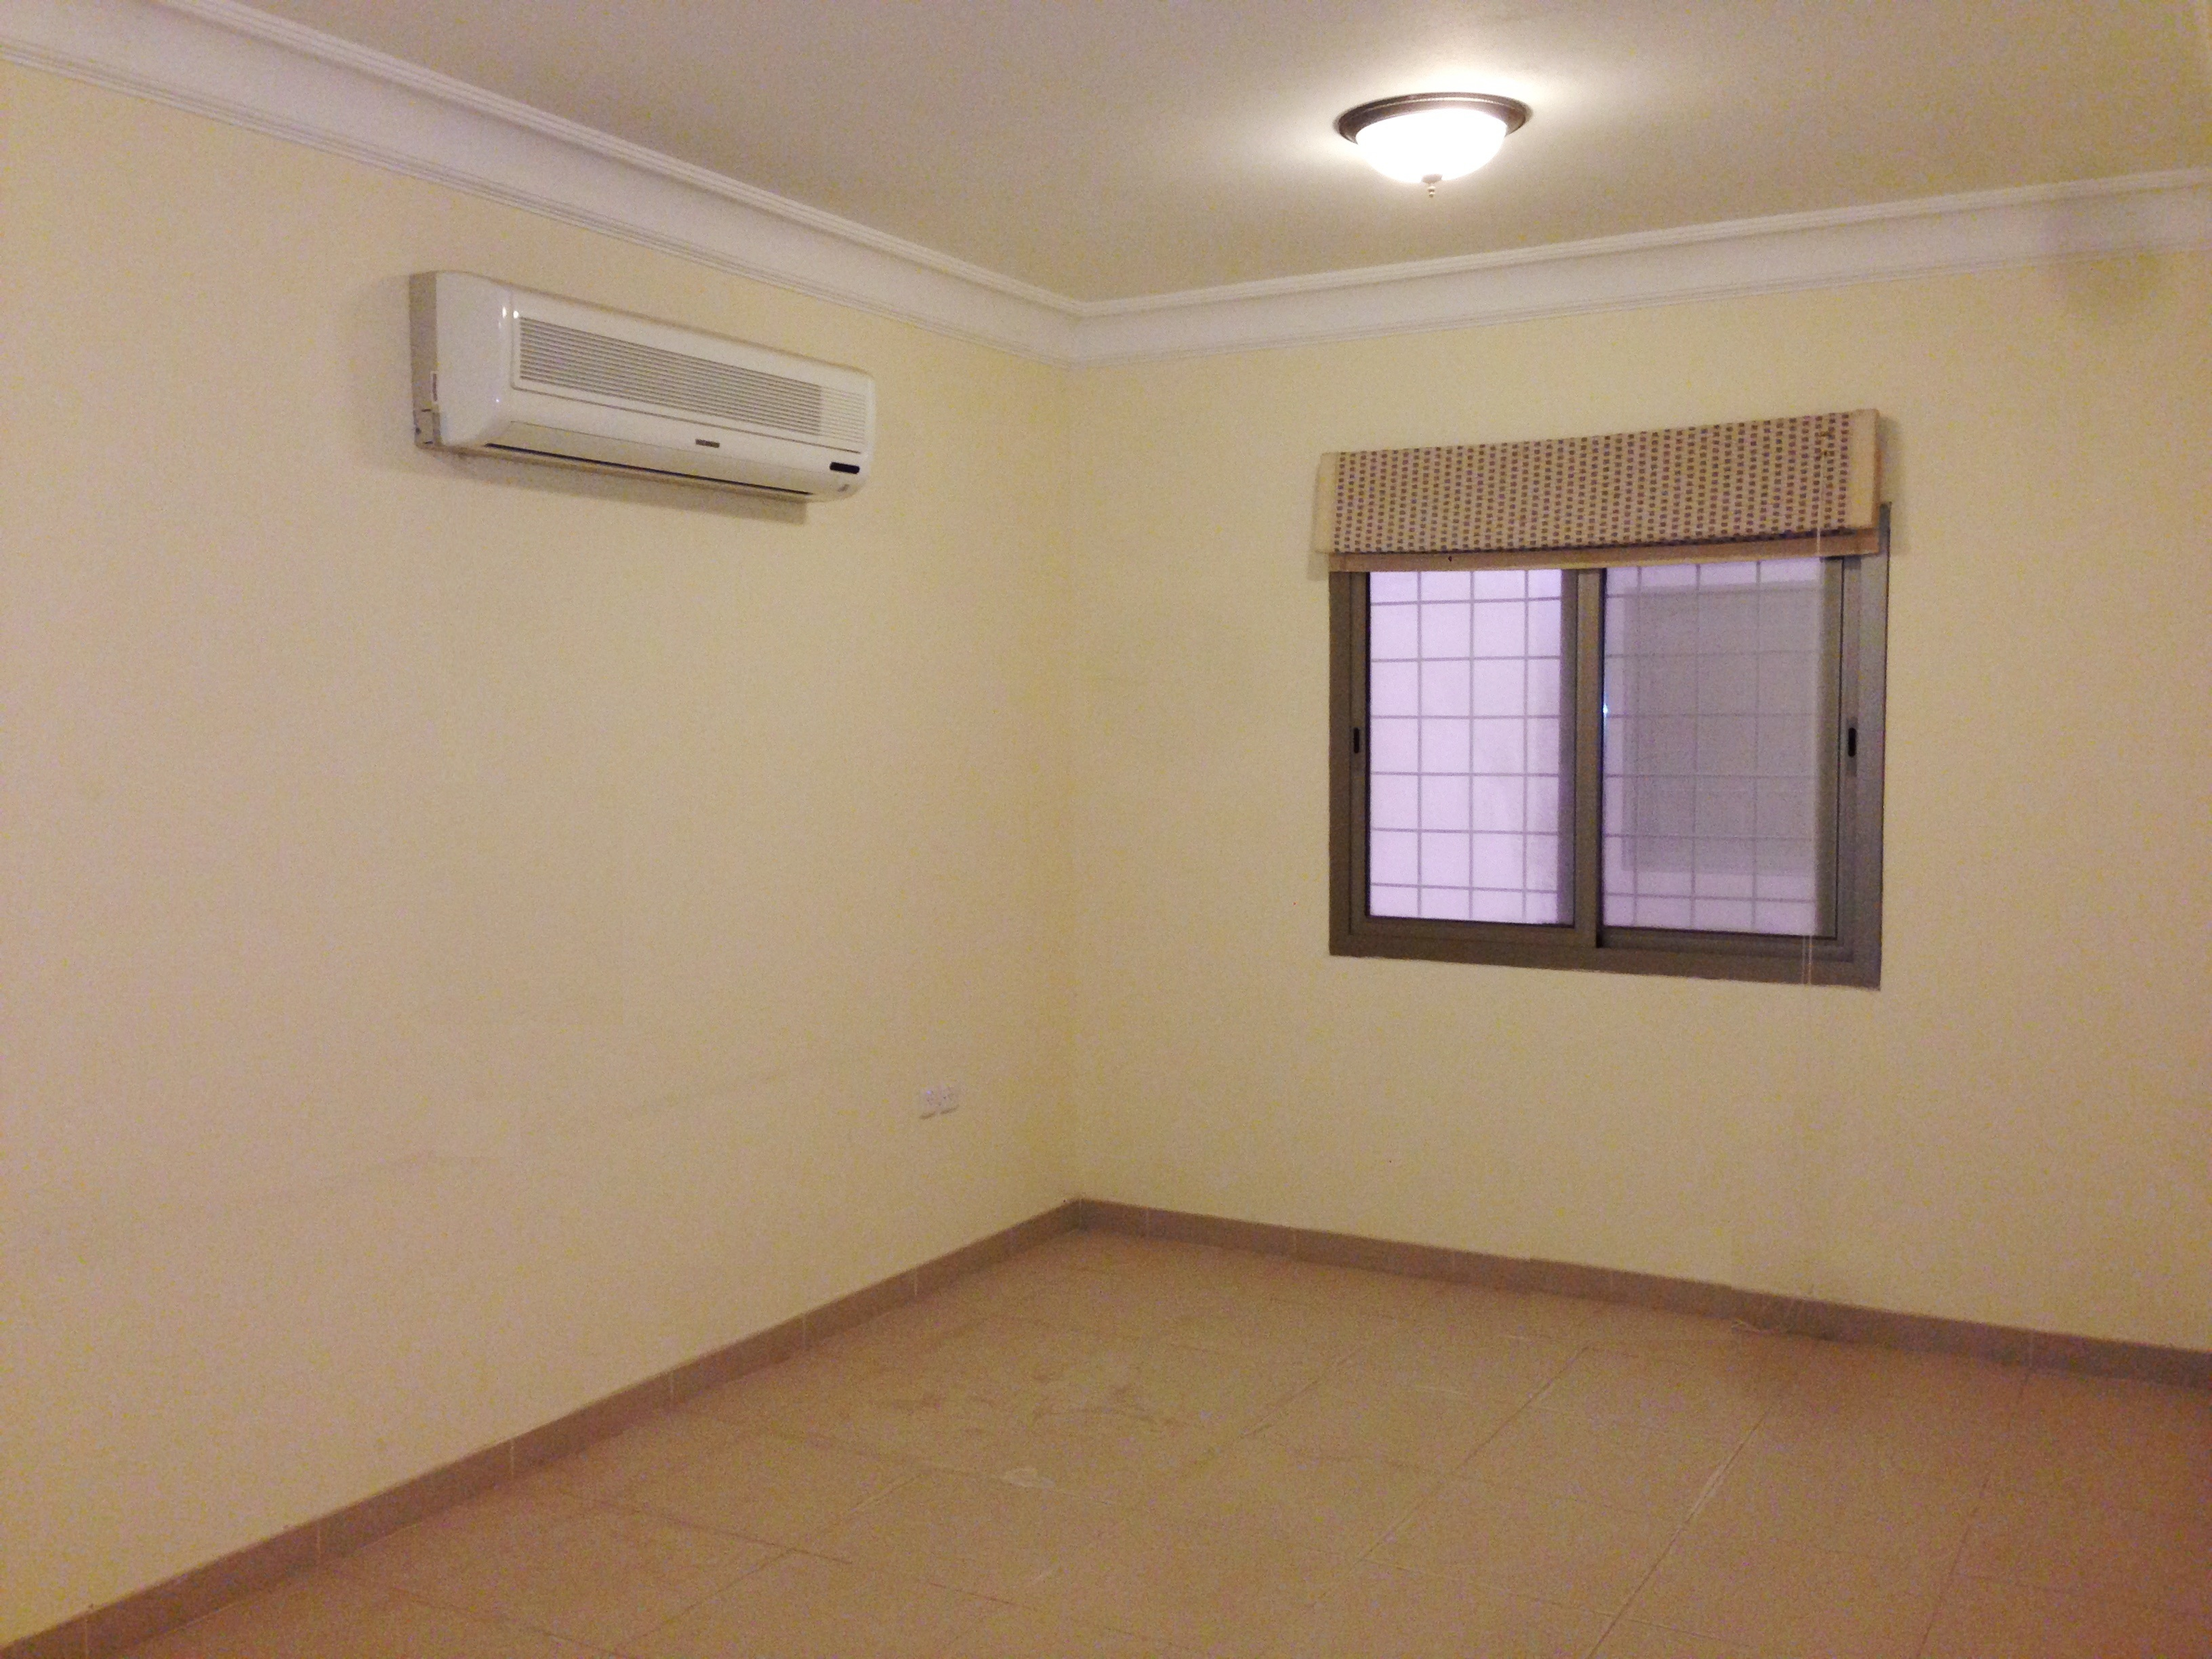 Residential / Featured Properties Mahatrish Villa Rakkah - South Al Khobar For Rent